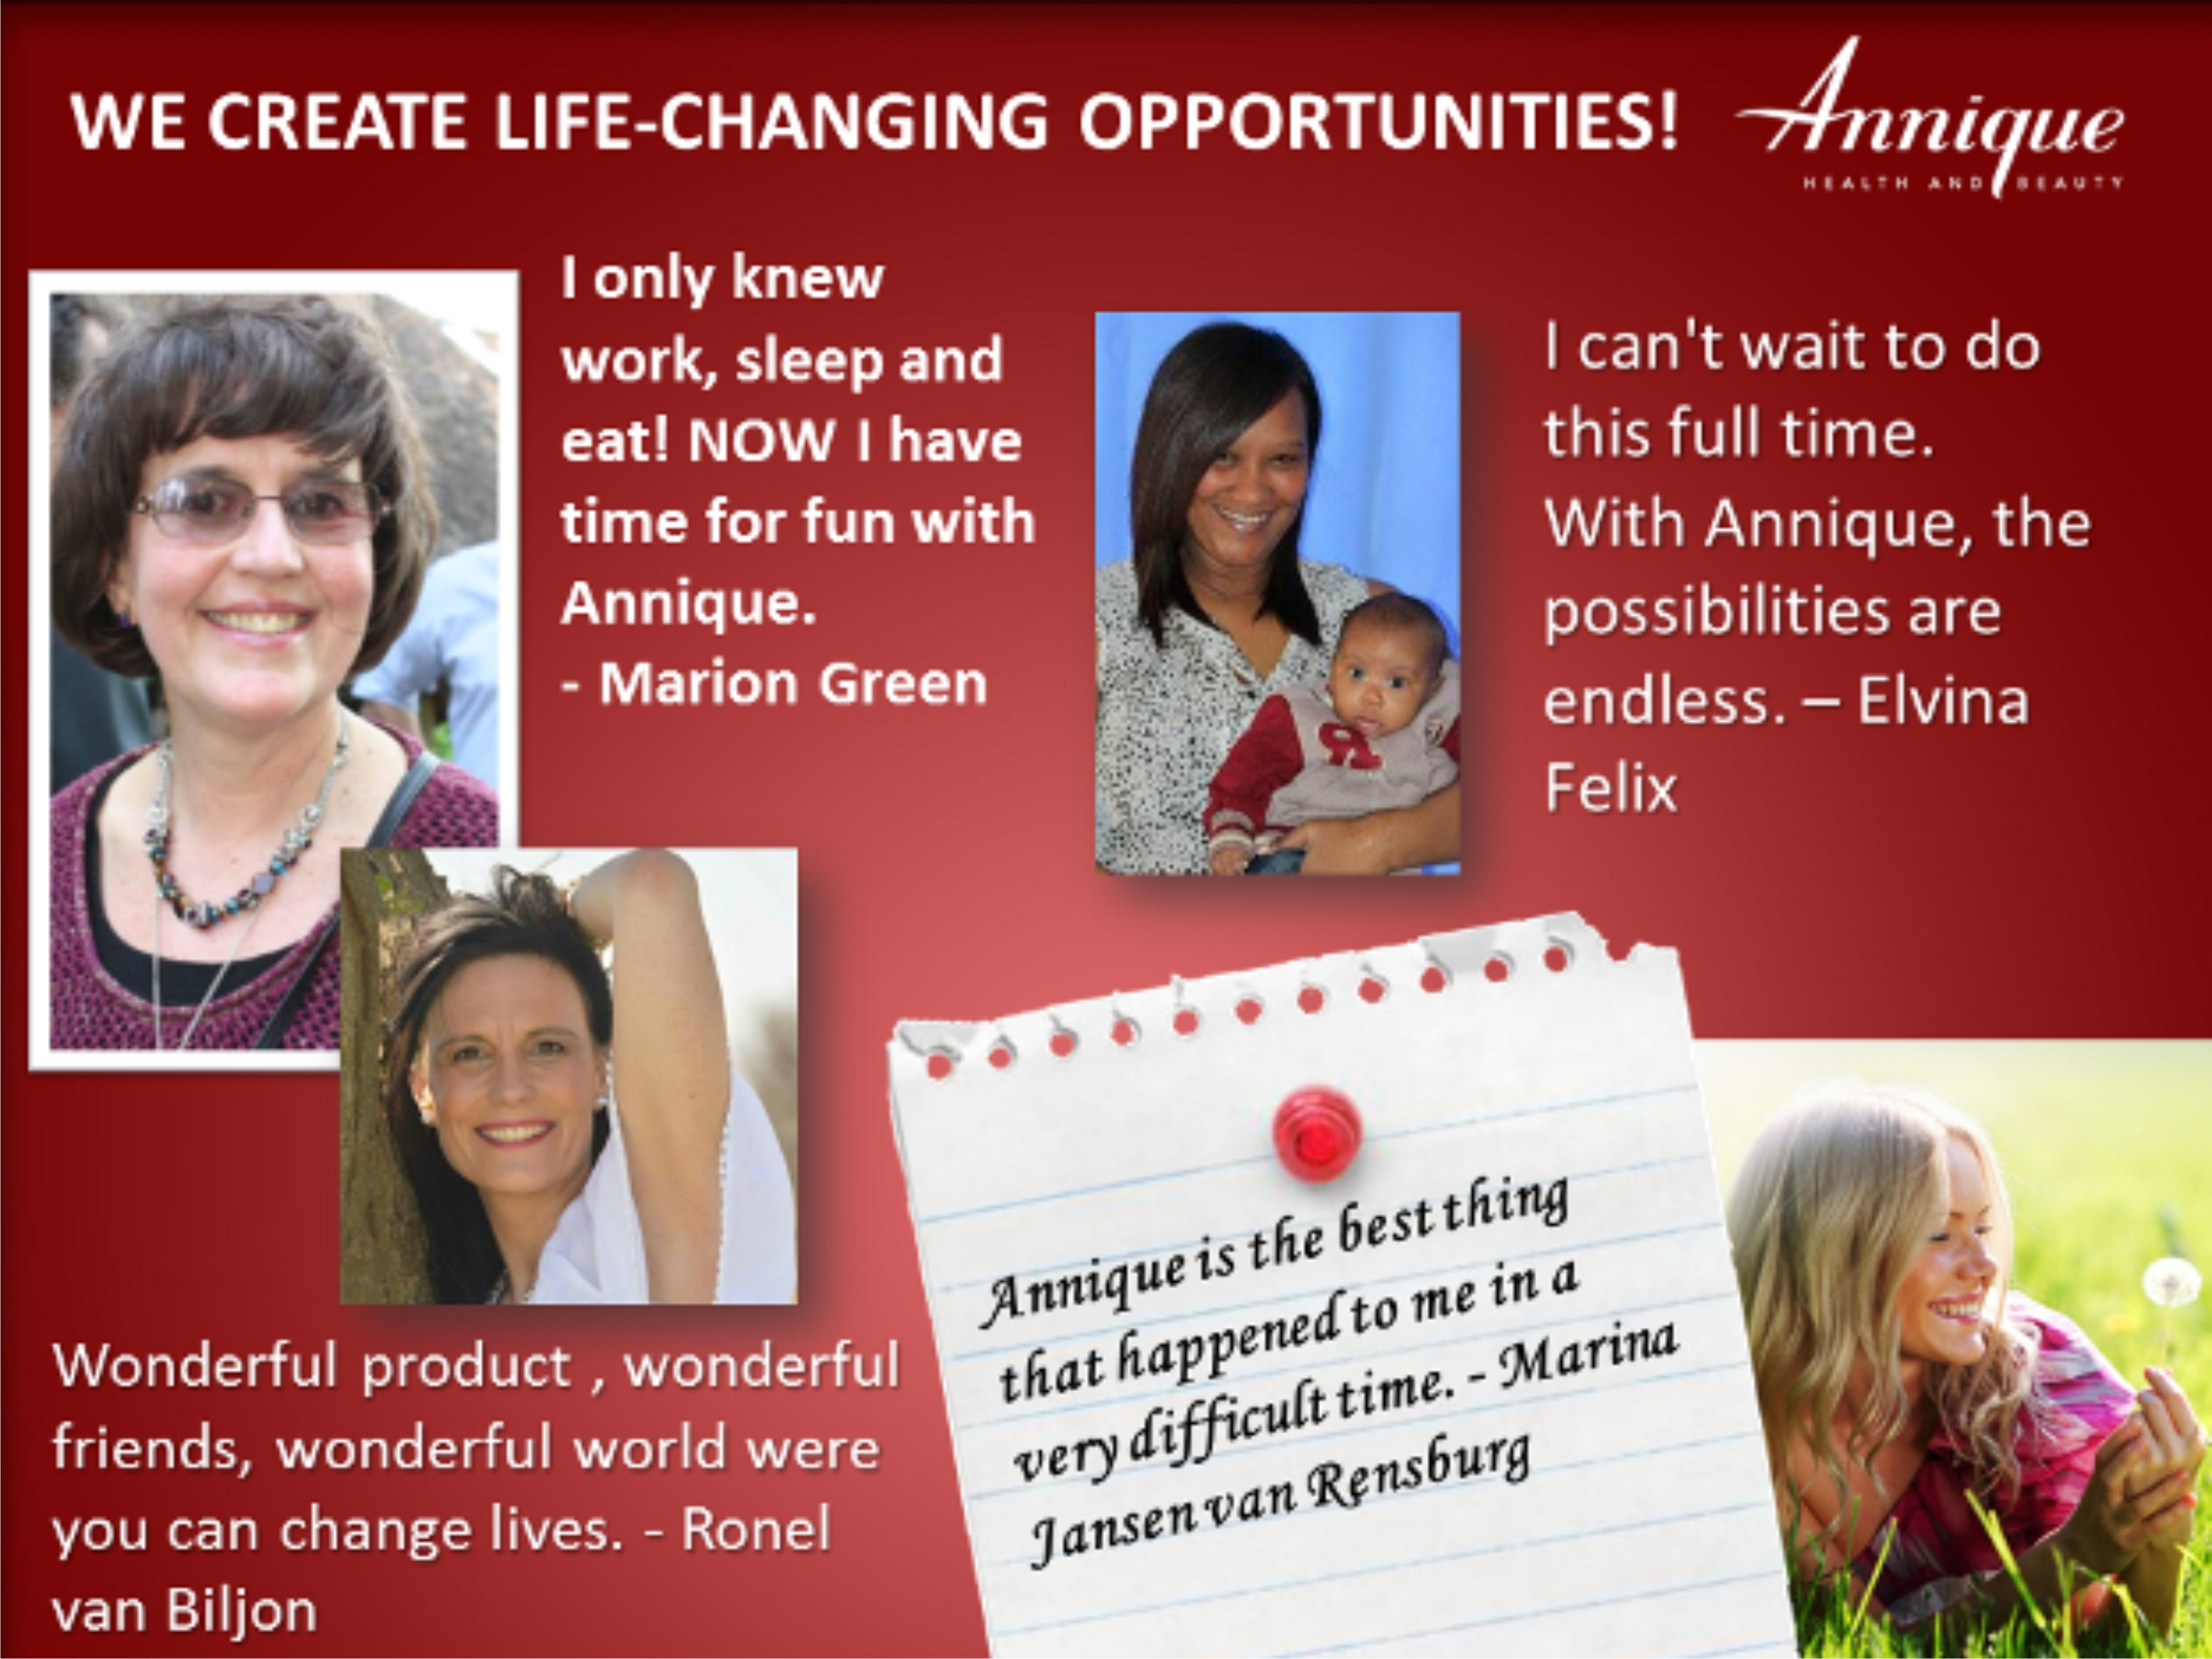 about leaves and twigs marion green annique and rooibos call me your independent annique consultant to experience rooibos by smelling tasting and seeing it and feeling it on your skin